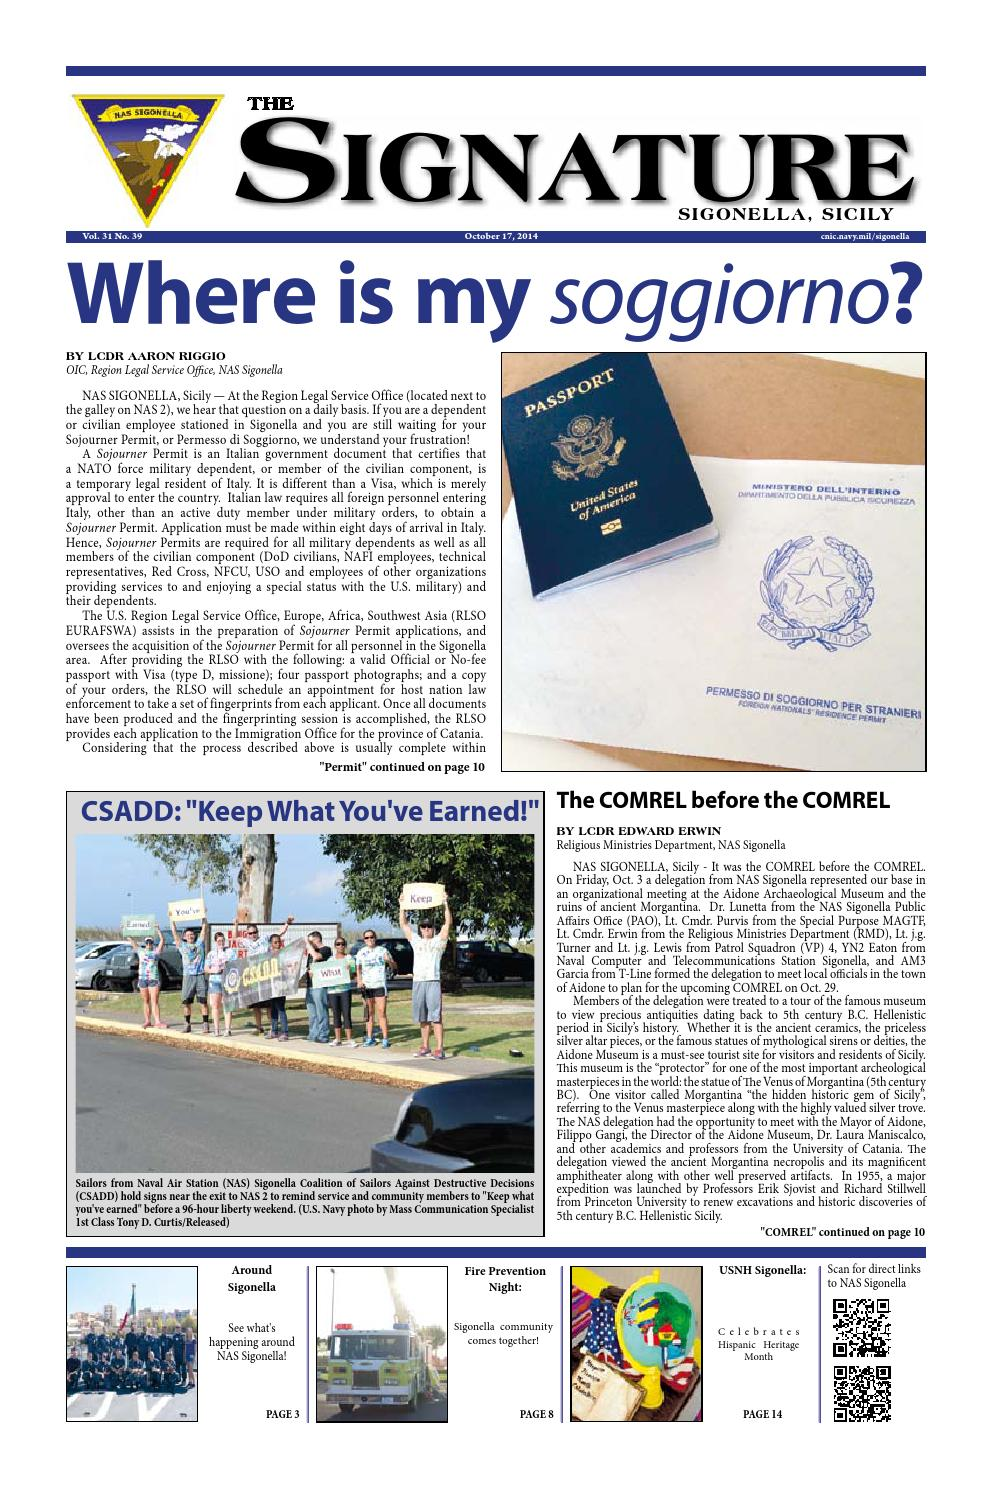 The Signature October 17 2014 By Nas Sigonella Signature Issuu - Soggiorno Office Aviano